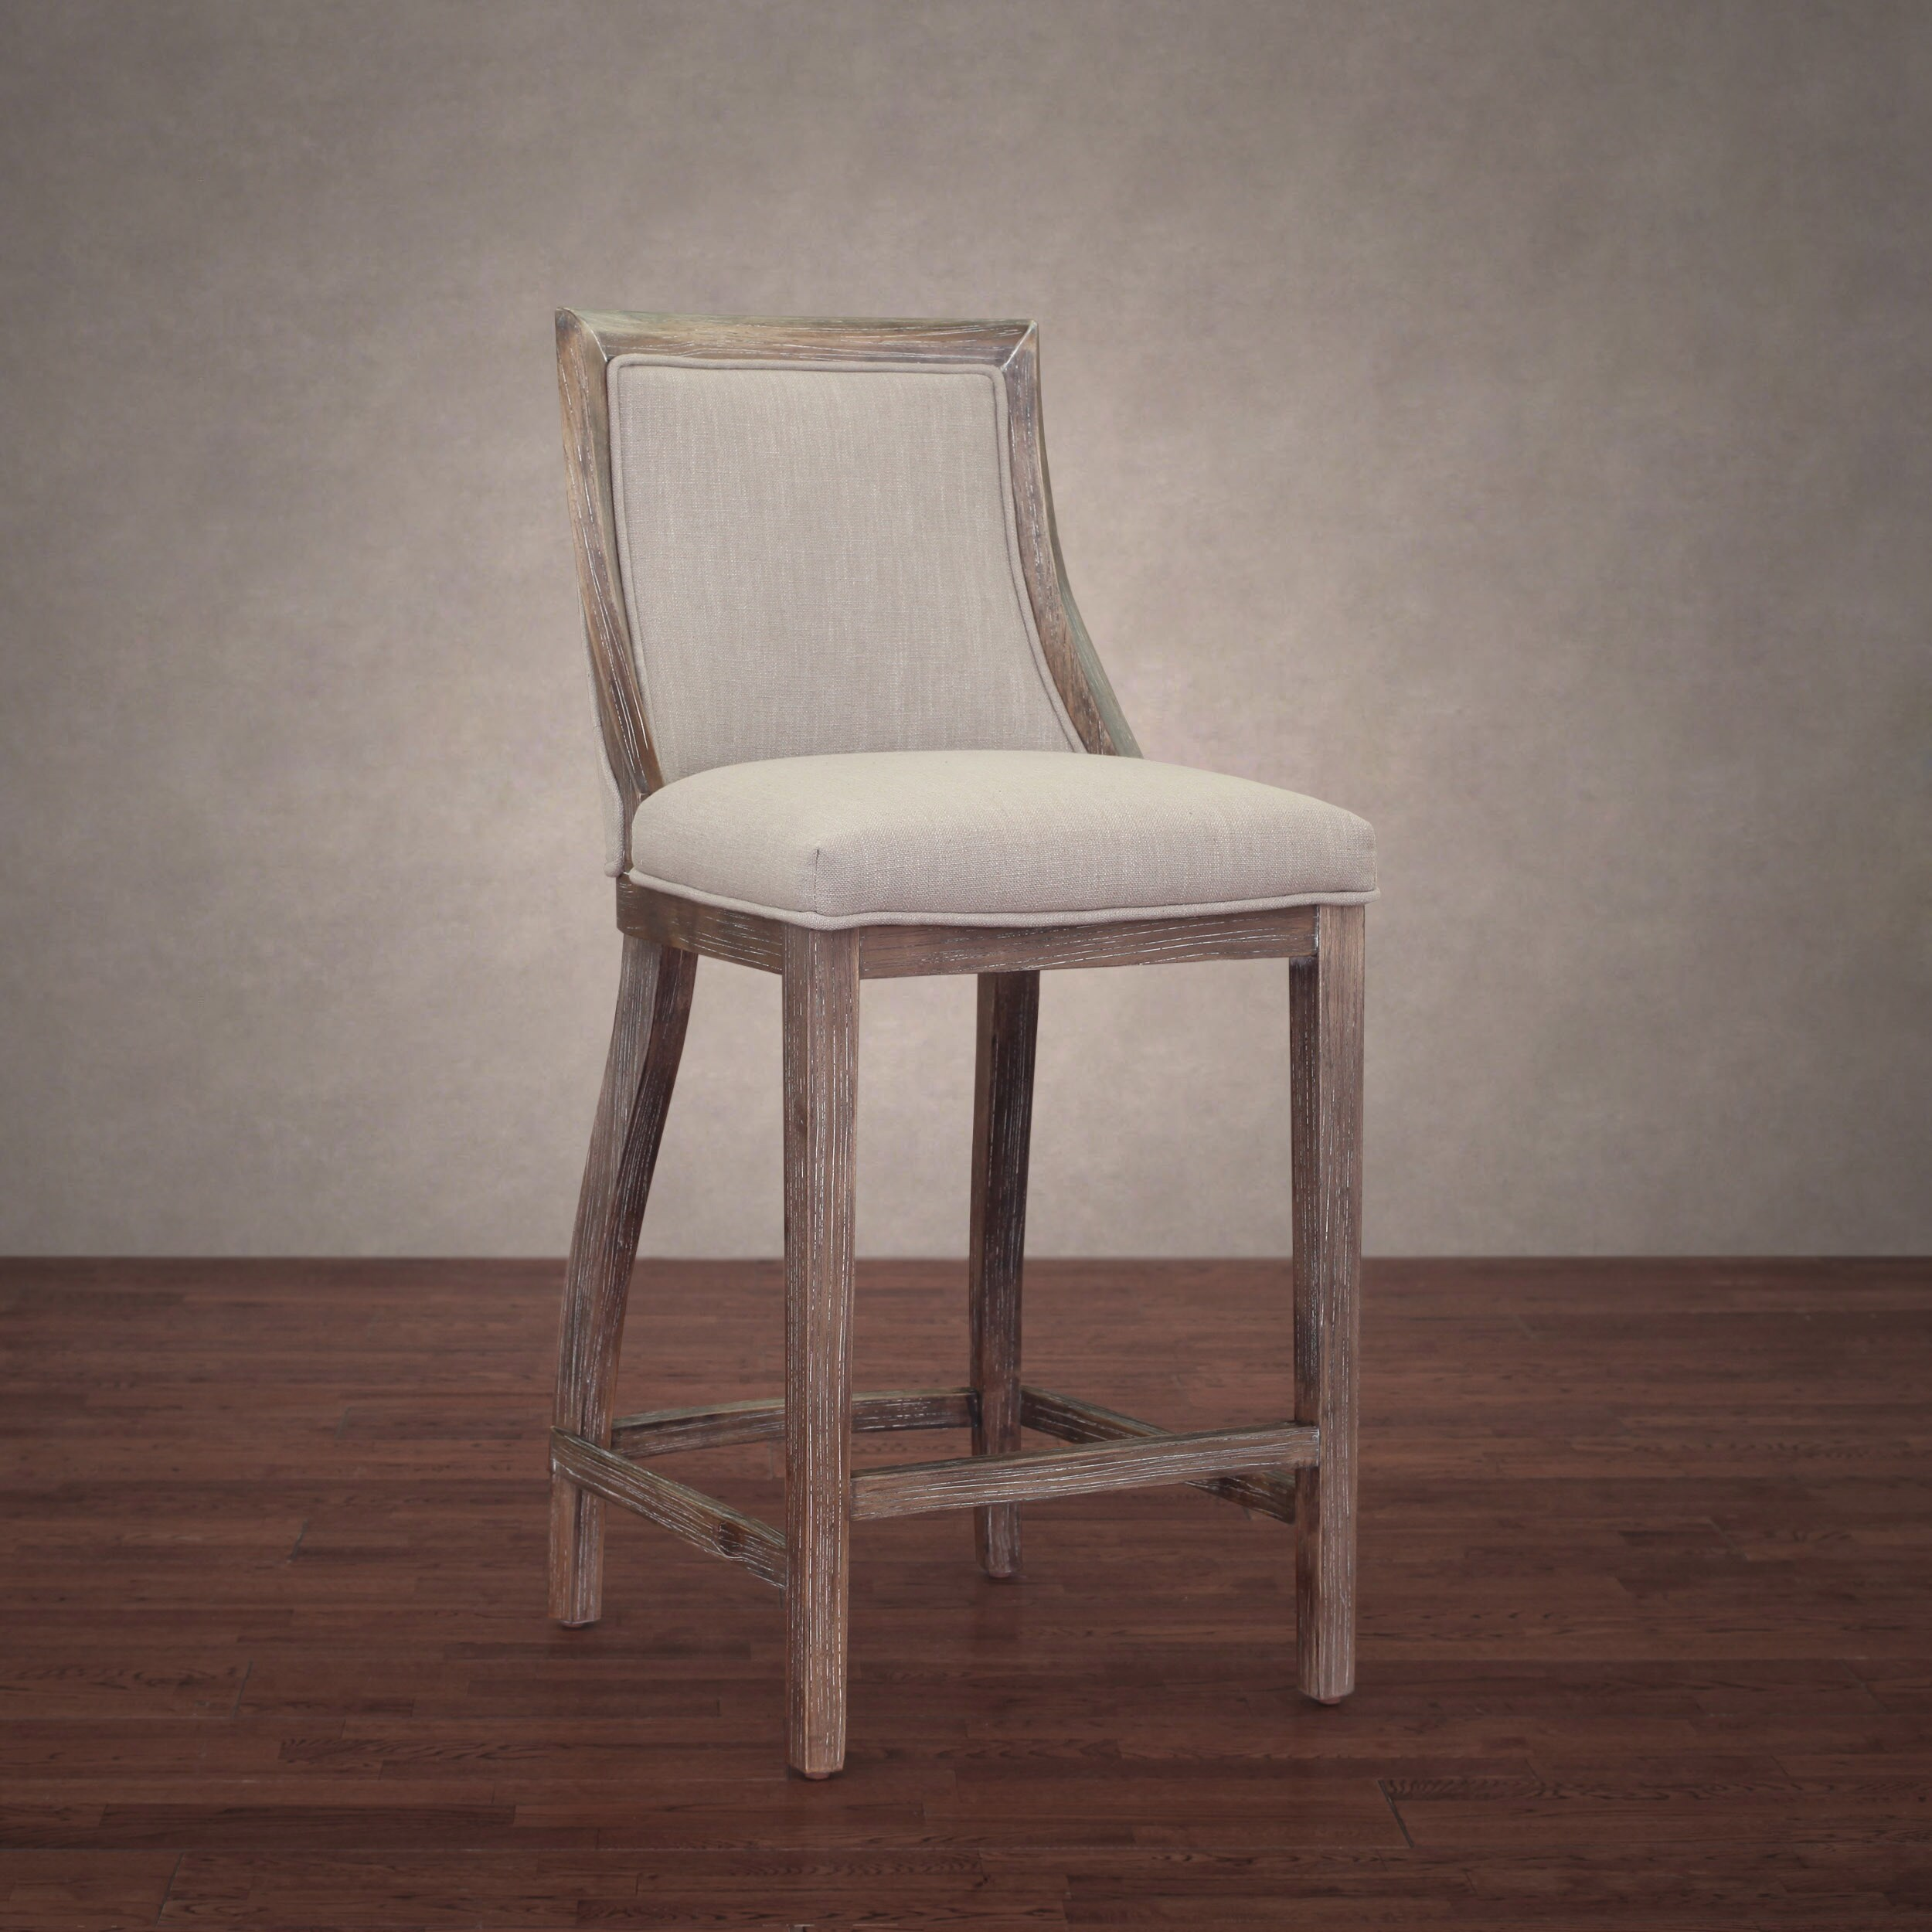 Wondrous The Gray Barn Park Avenue Beige Linen Counter Stool Ncnpc Chair Design For Home Ncnpcorg